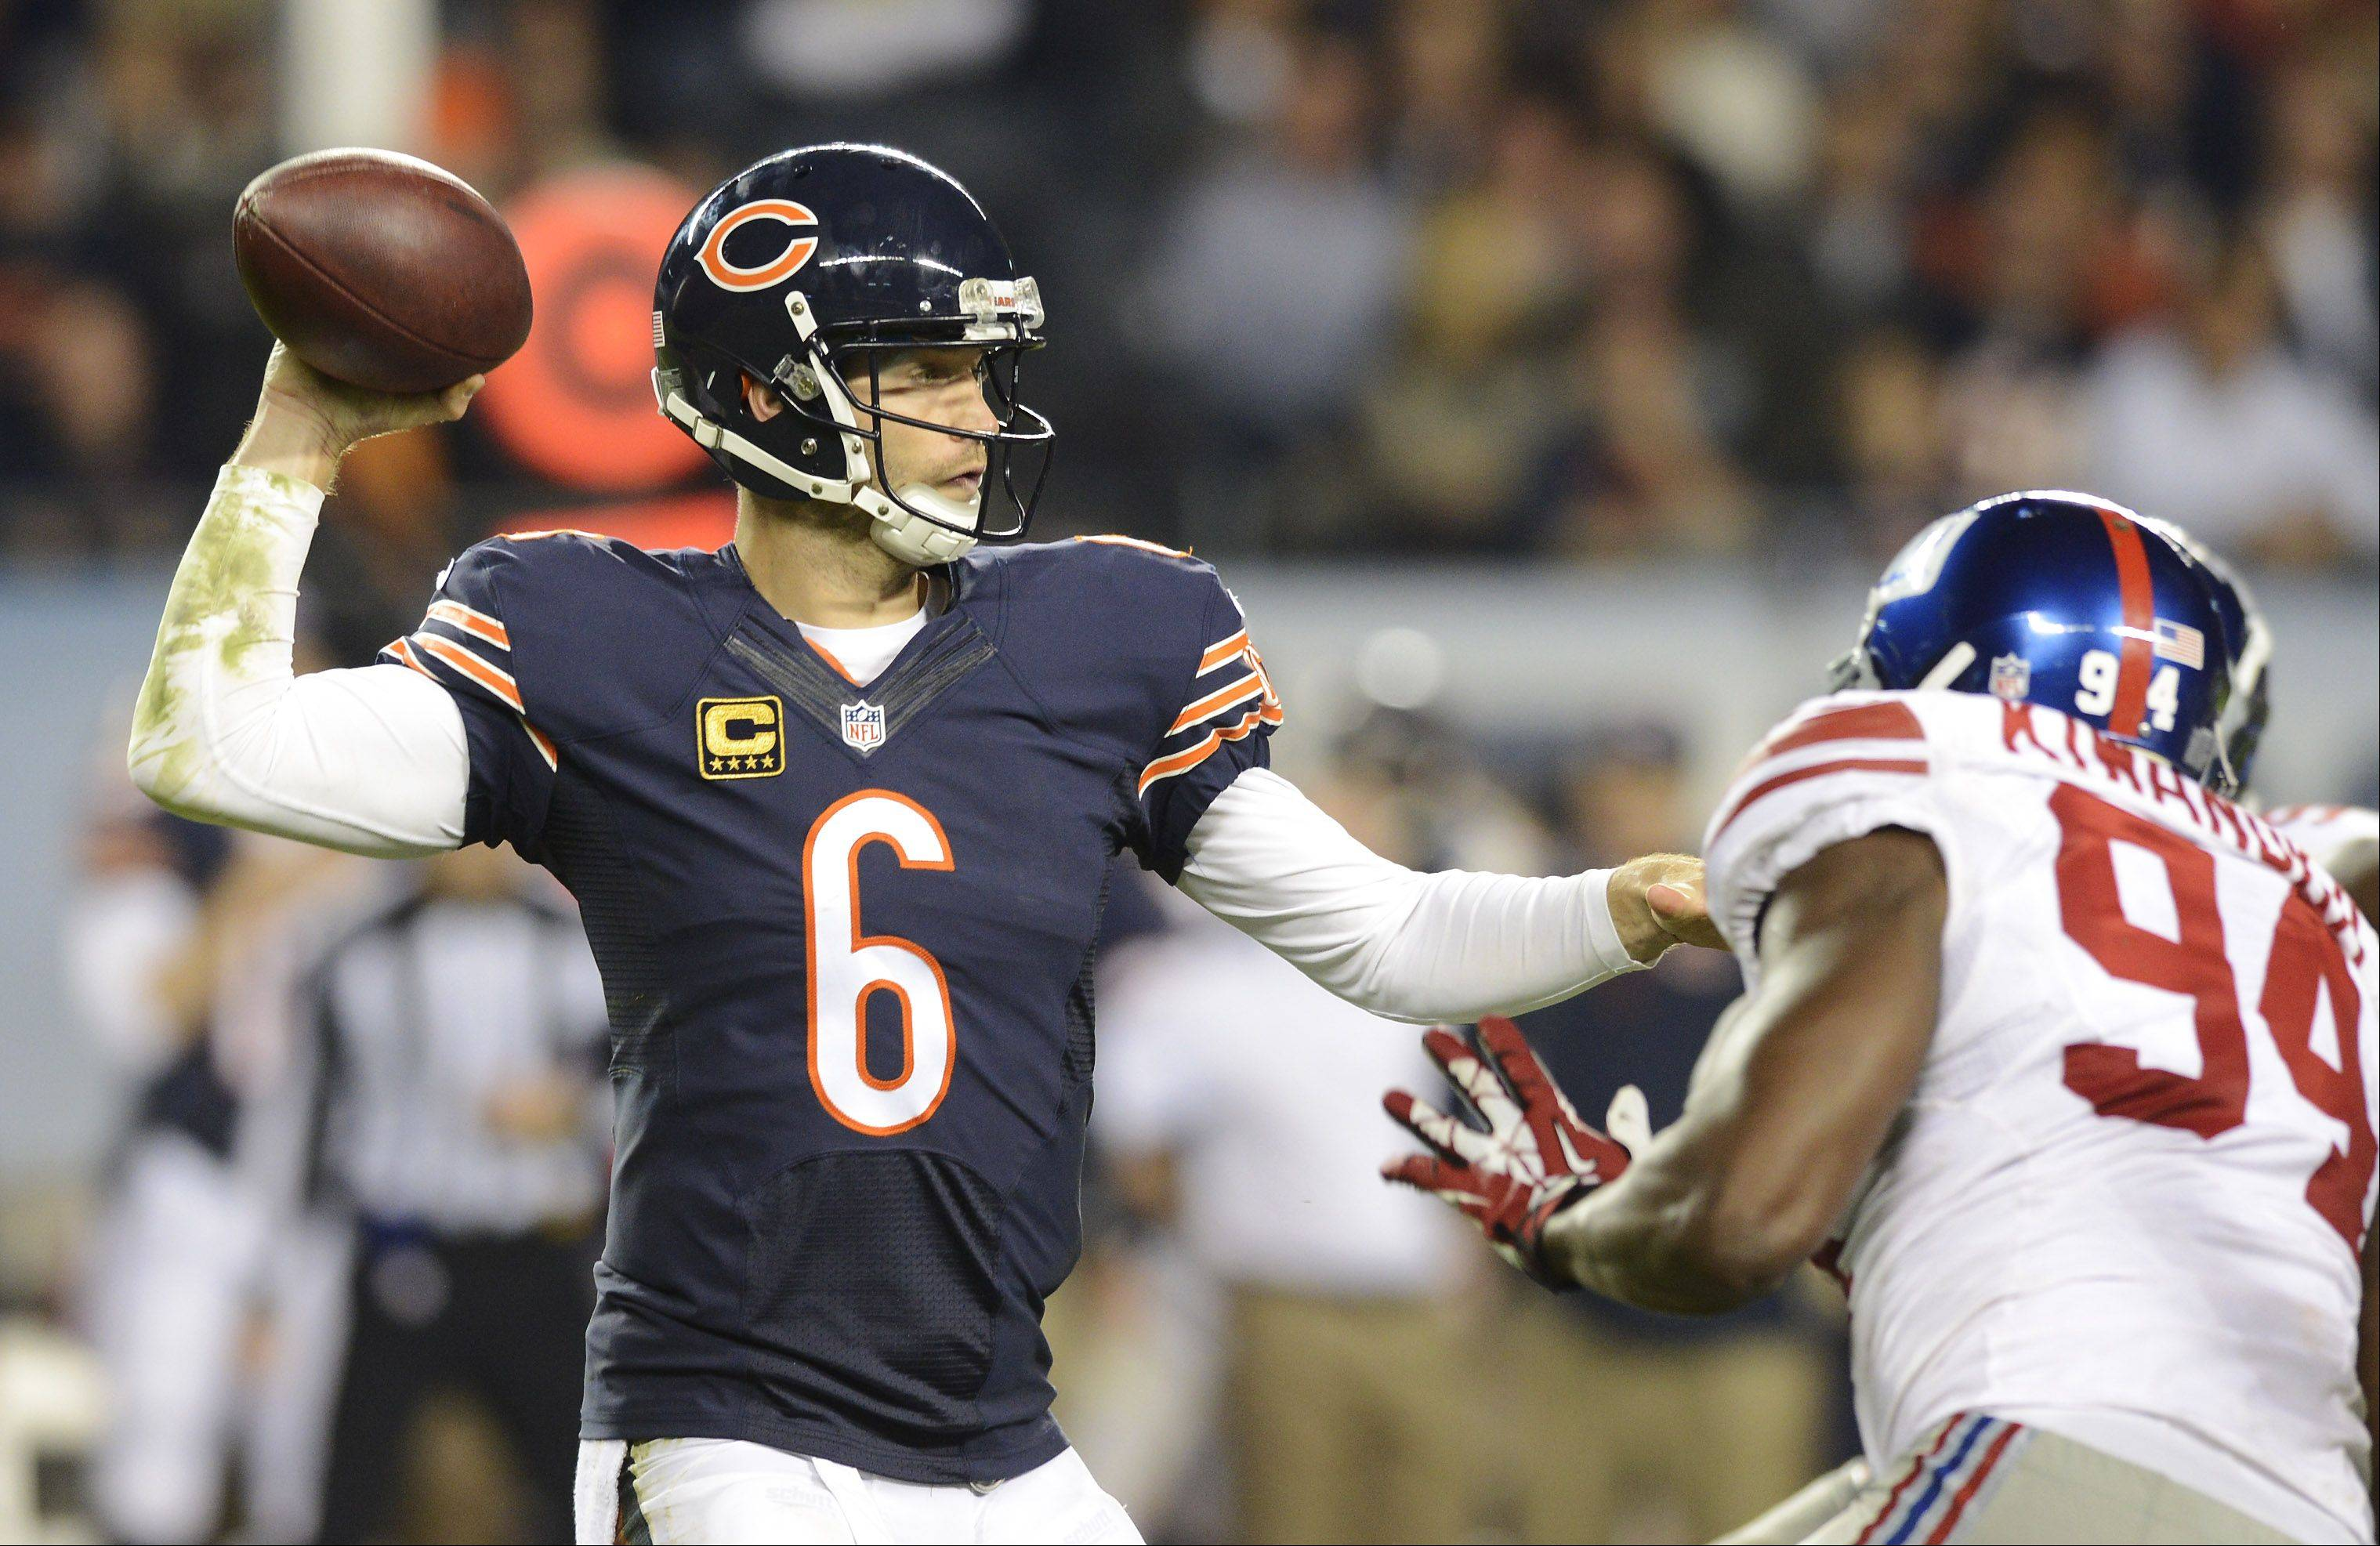 Bears coach Marc Trestman�s philosophy is to talk with players about any outside �noise� surrounding the team, such as when fans and media were debating whether or not Jay Cutler (above) should play over backup Josh McCown last week.